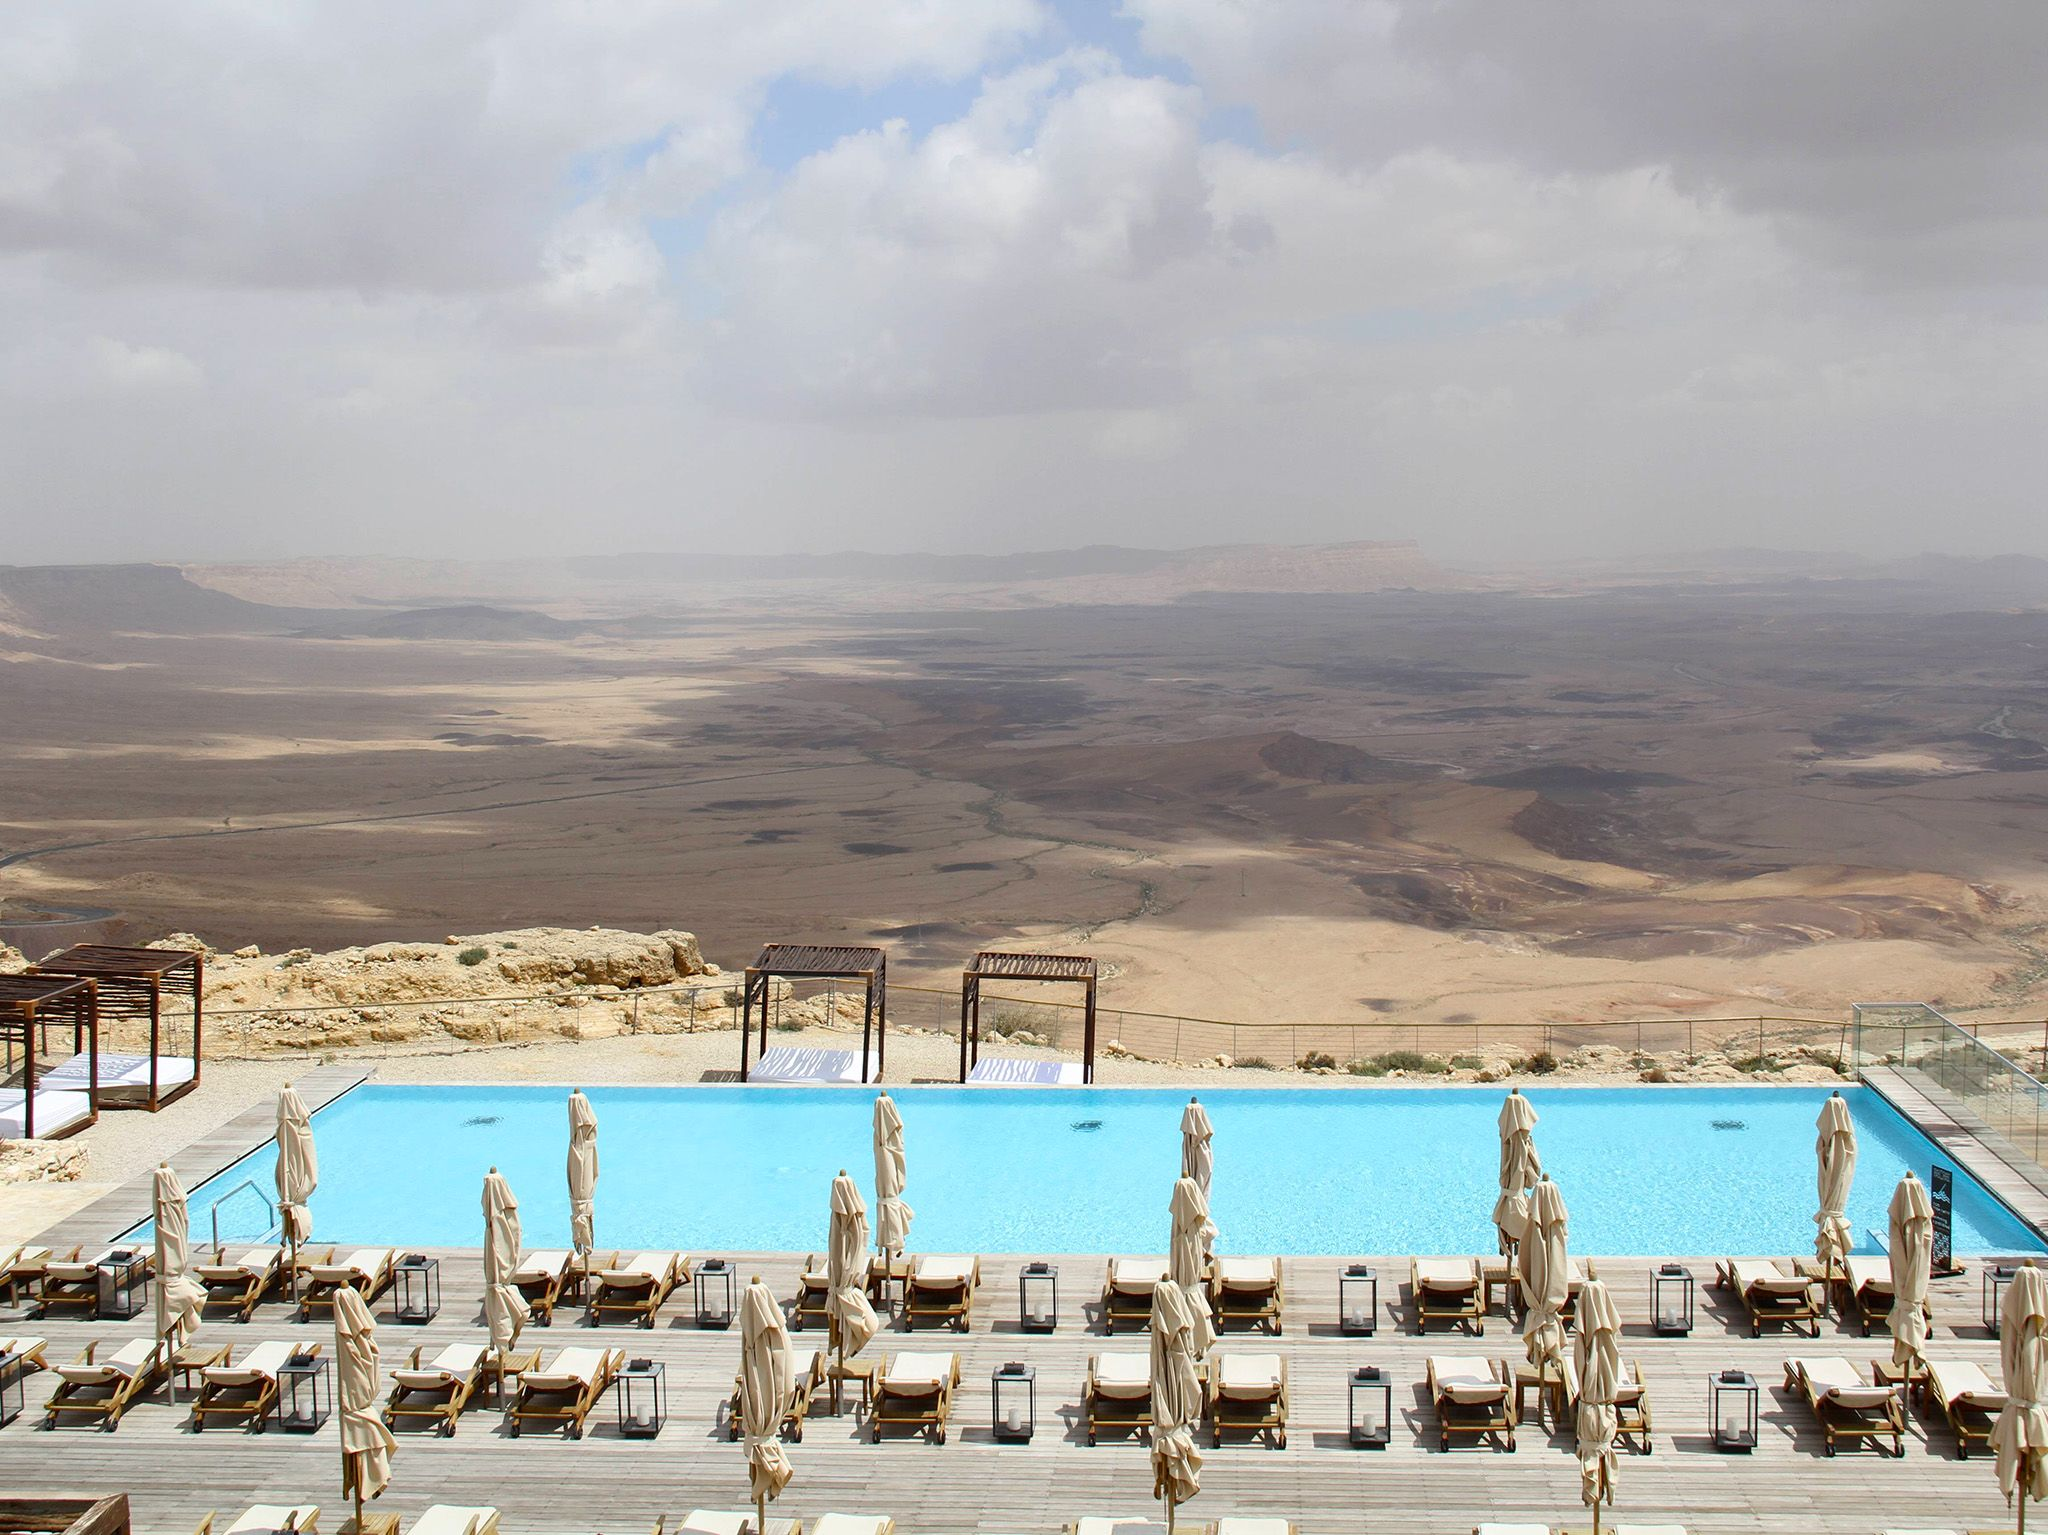 Israel: Outdoor pool at the Beresheet Hotel, located in Israel's Negev Desert. This image is... [Photo of the day - August 2017]